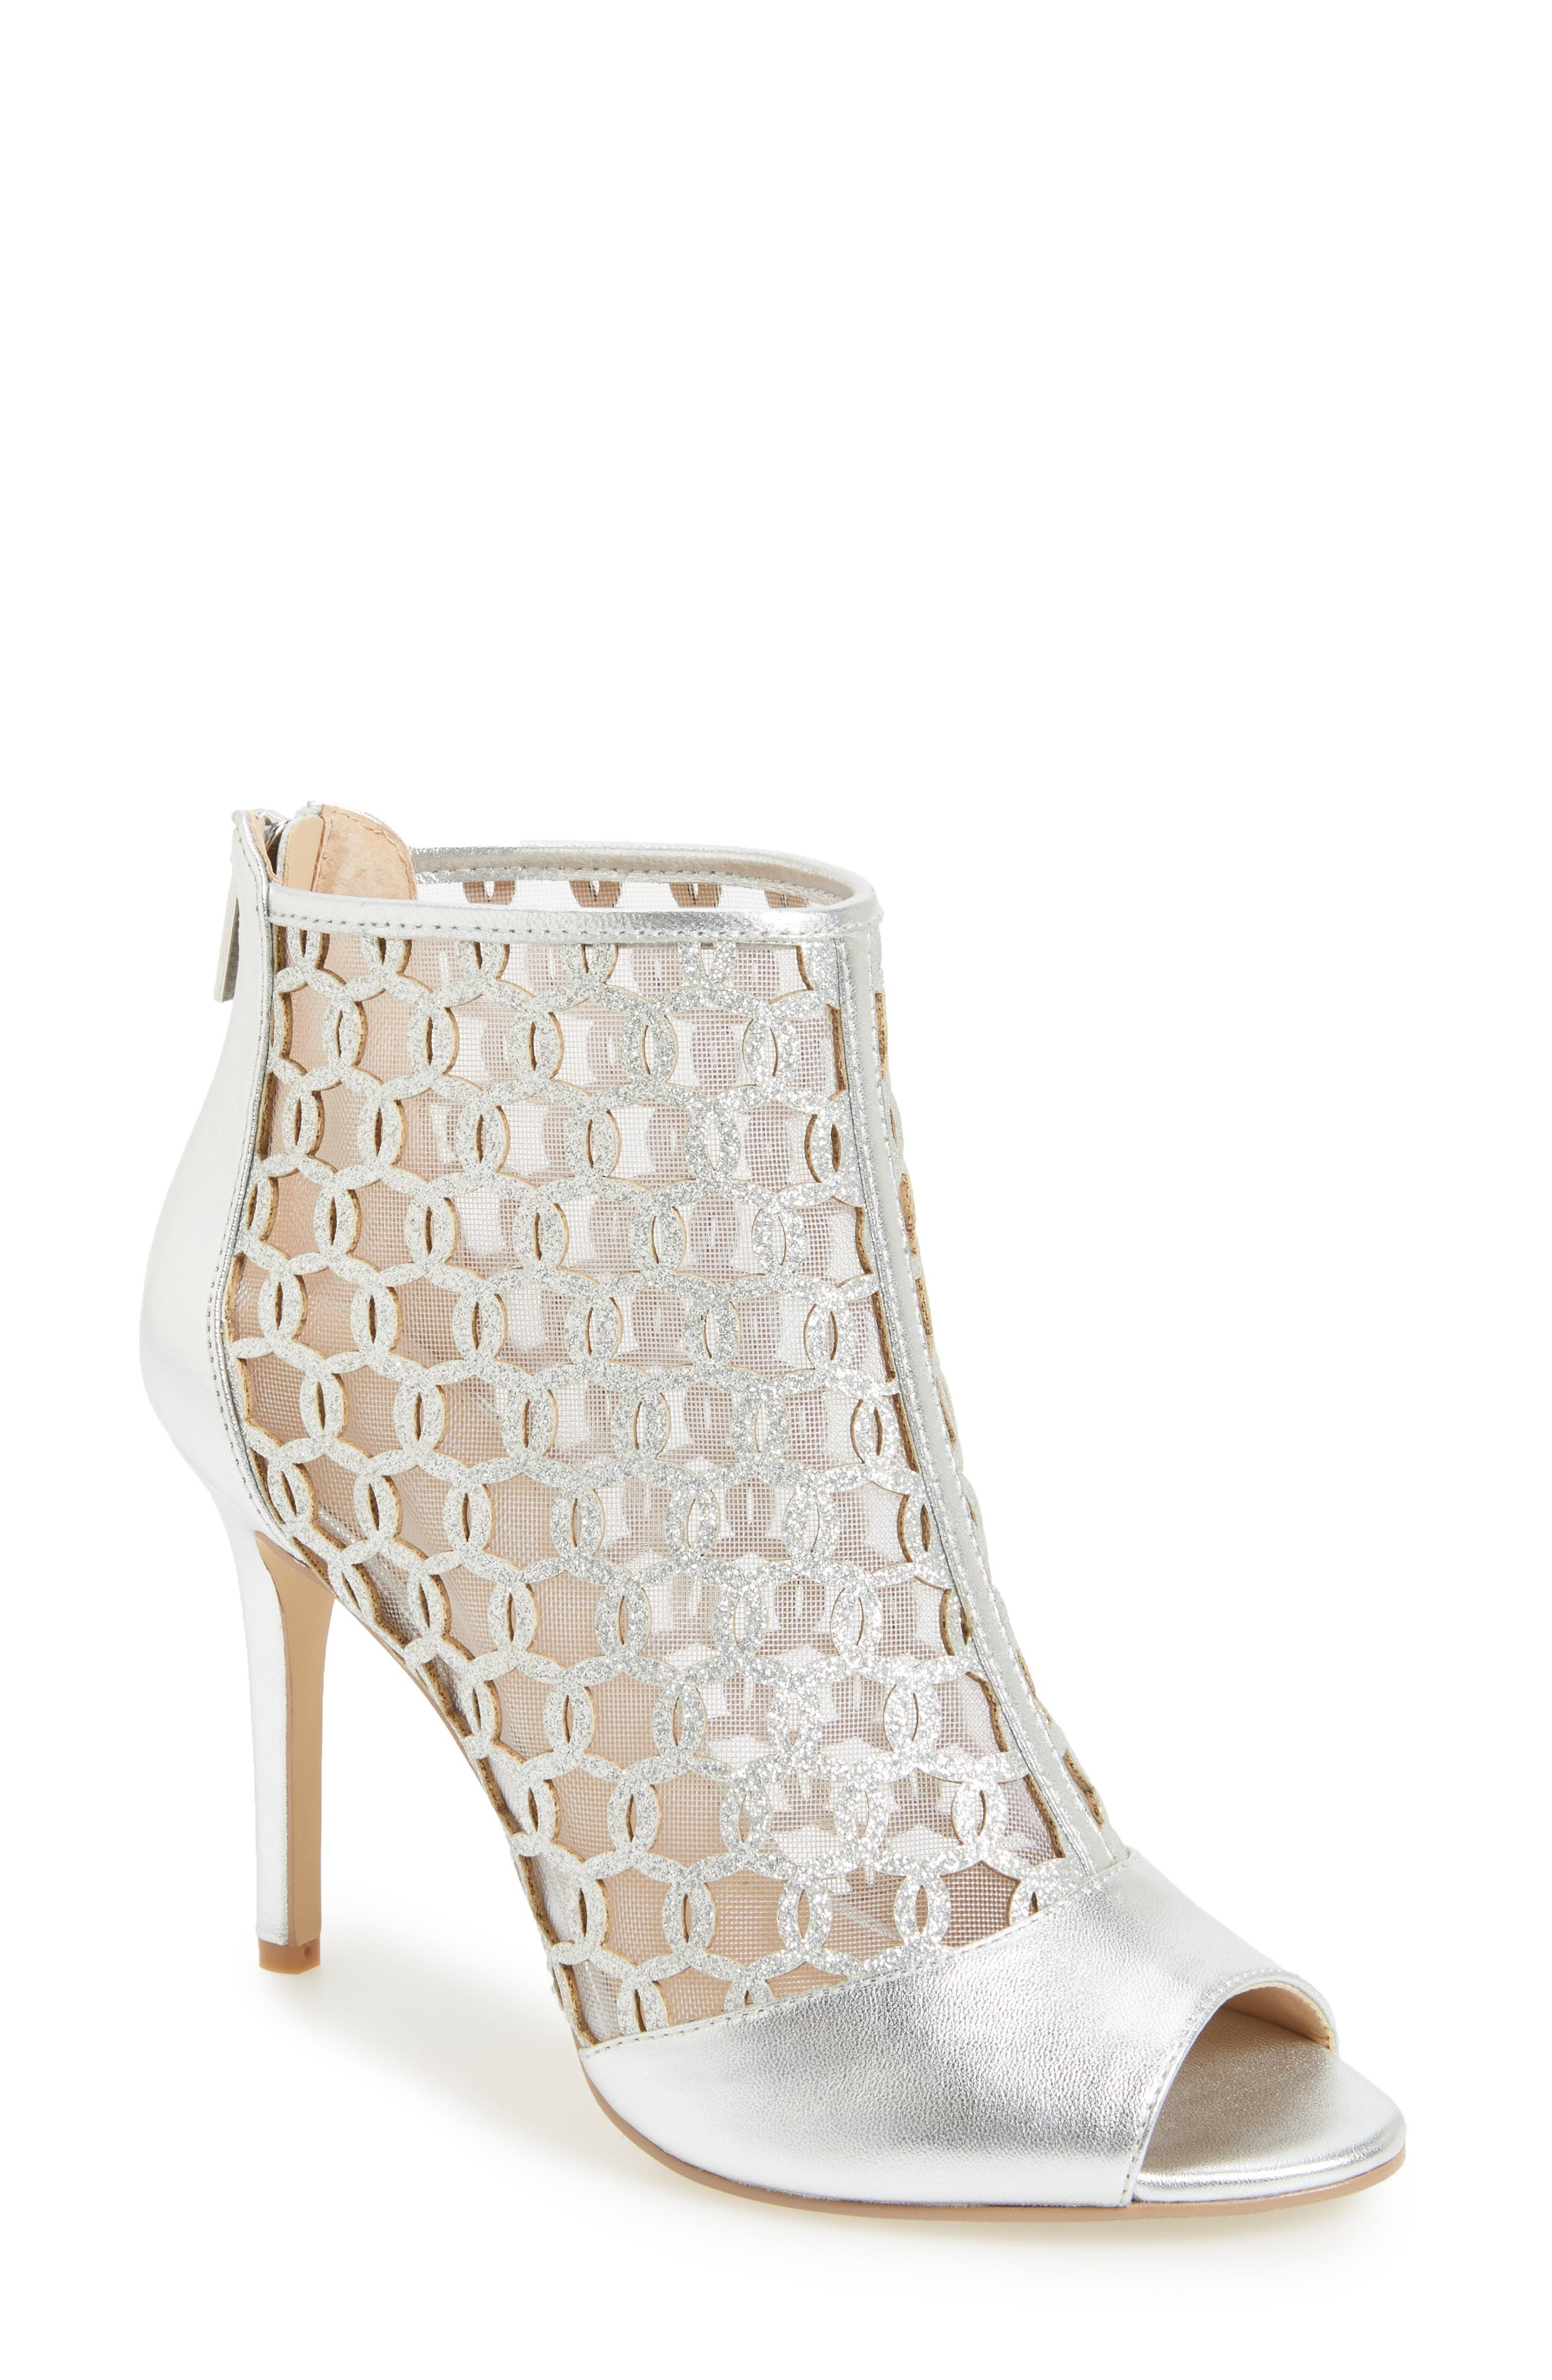 Holt II Glittery Cage Sandal,                         Main,                         color, Silver Satin